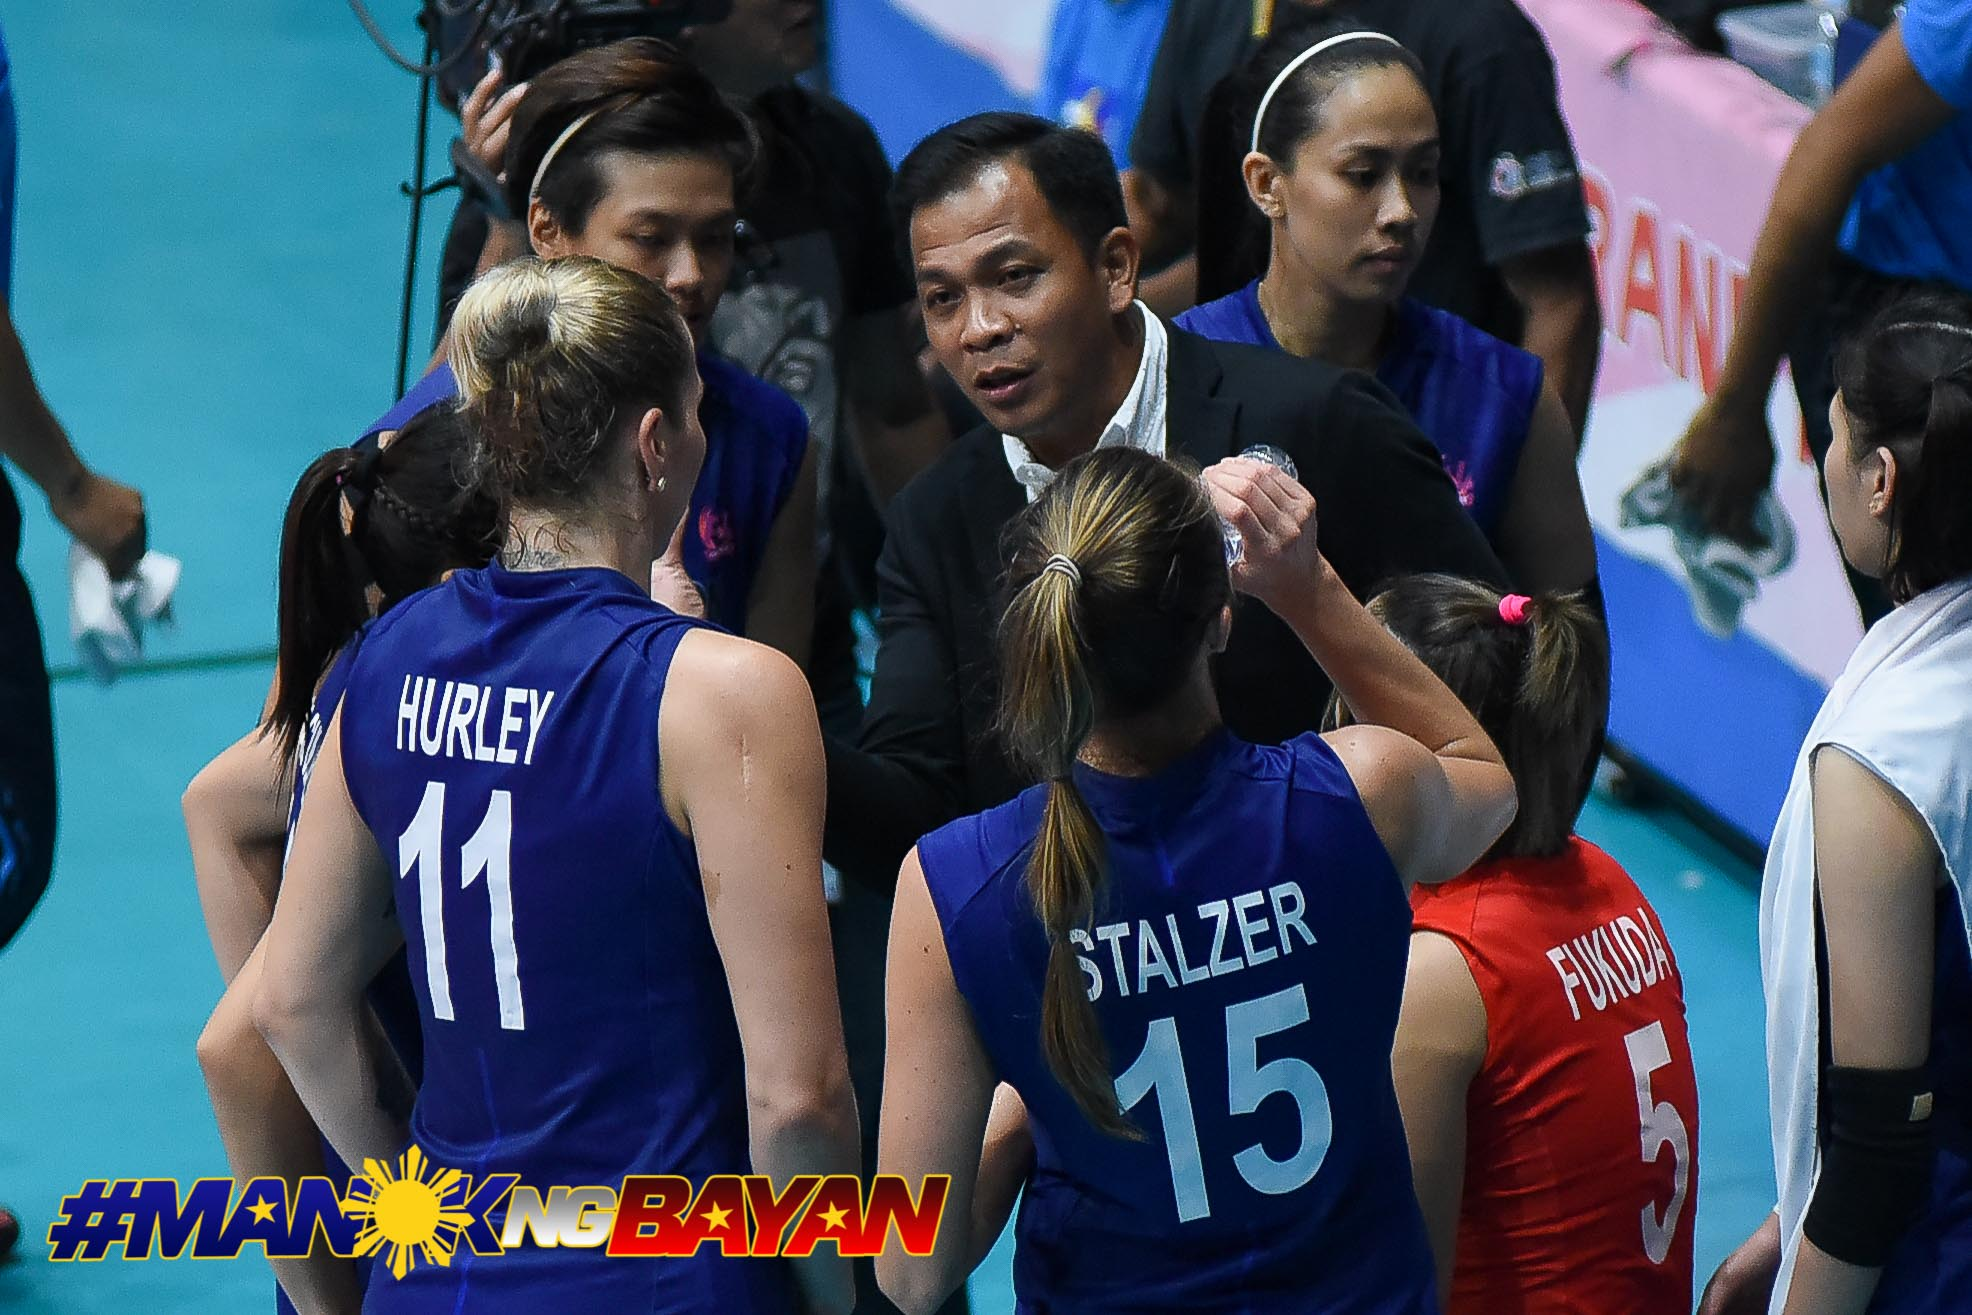 PSL-GP-Finals-Game-2-Petron-vs.-F2-Shaq-Delos-Santos-7006 Petron looks to re-assess after deflating Game 3 loss News PSL Volleyball  - philippine sports news